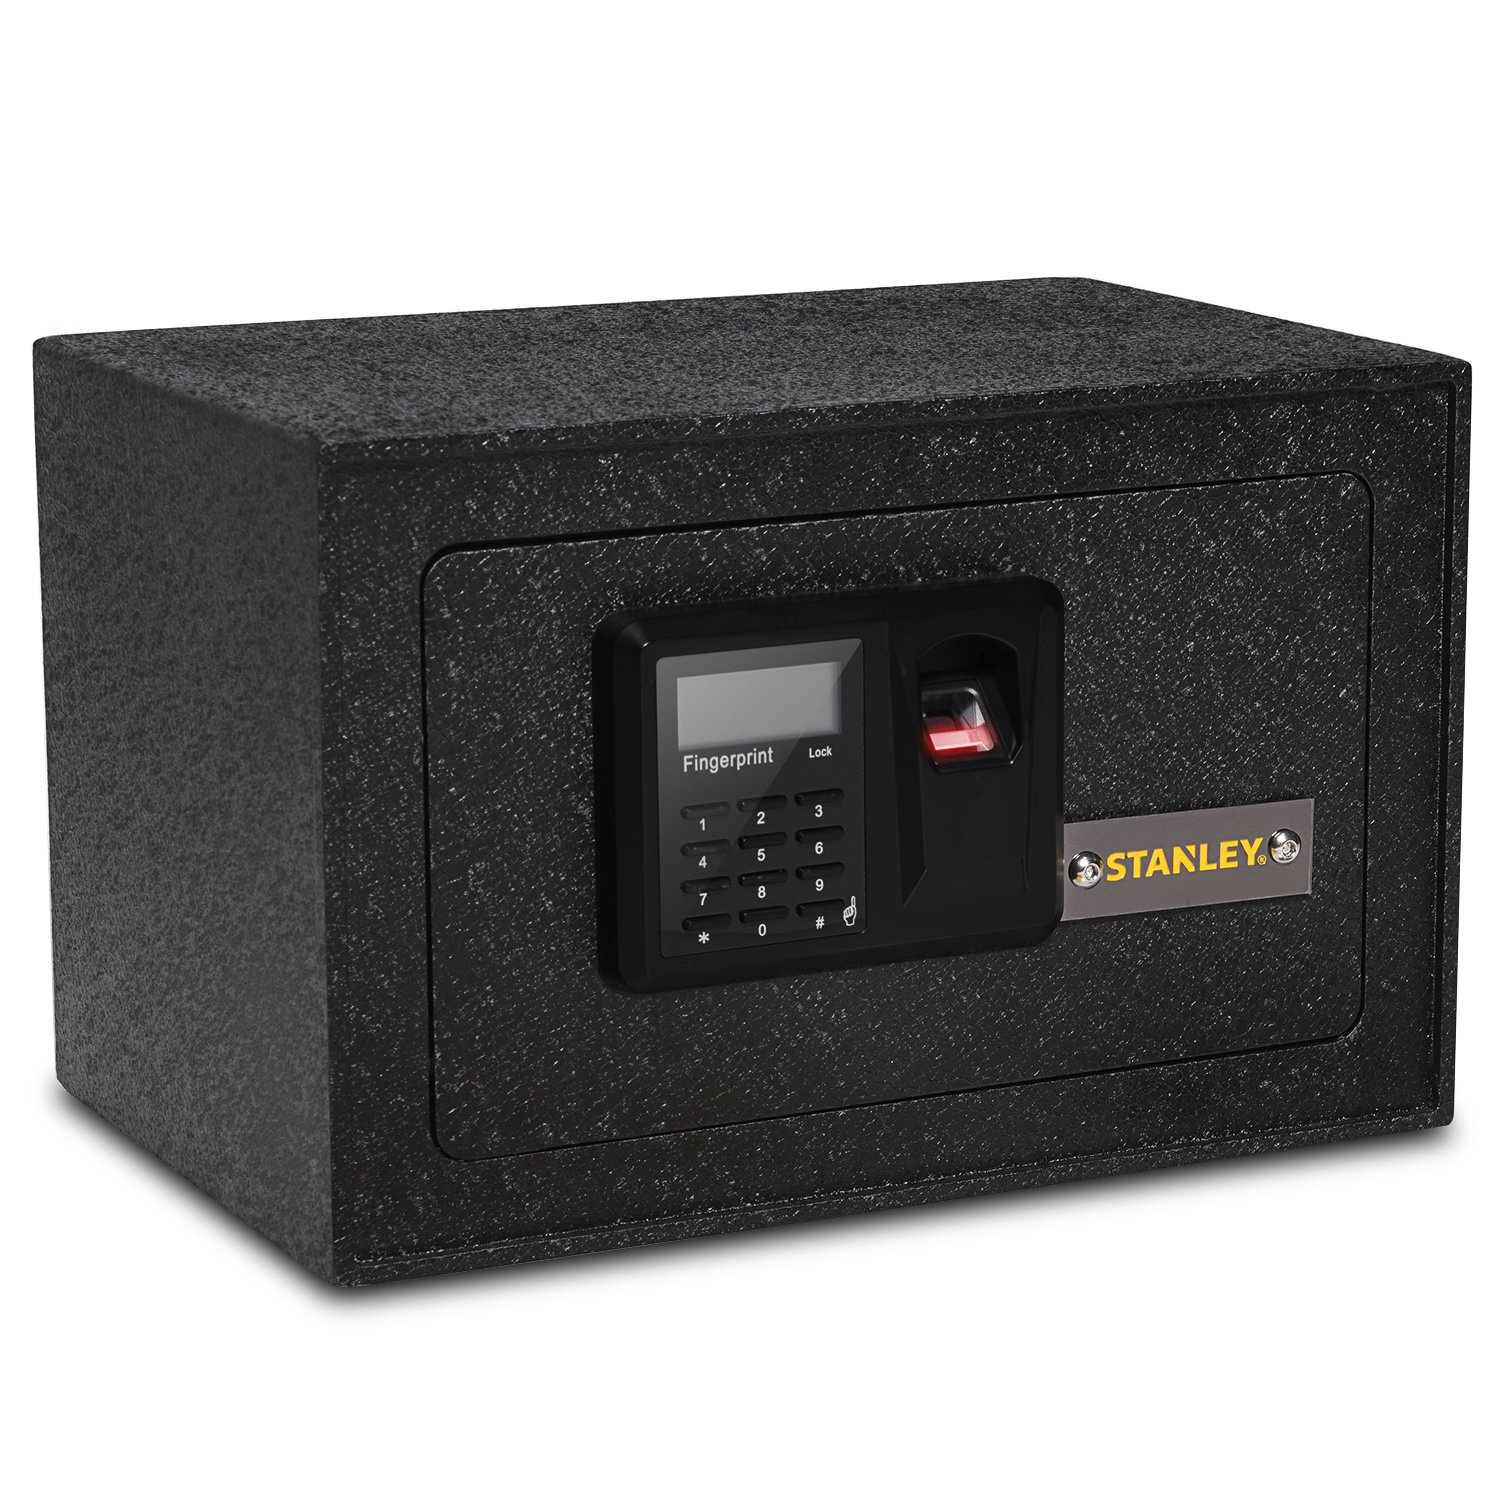 Stanley Solid Steel Biometric Personal Home Safe With Fast Access Fingerprint Recognition For Wall, Floor Or Closet � Secures Jewelry, Gun, Pistol, Firearms, Money, Valuable, Collectibles & More